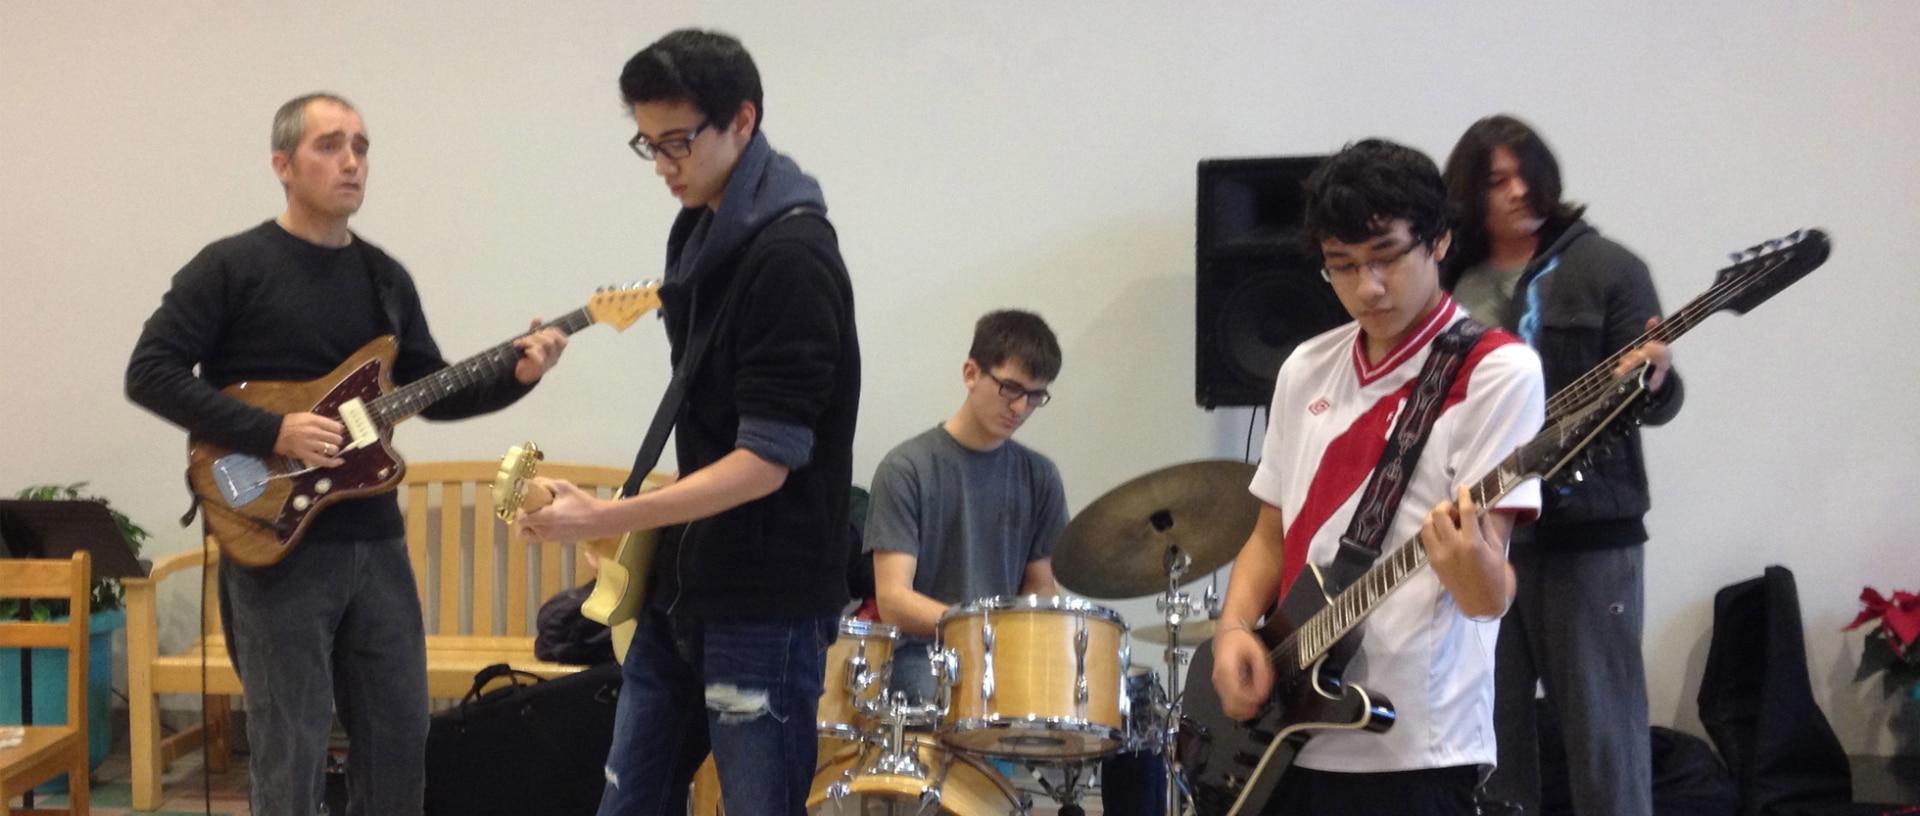 Powers rock band